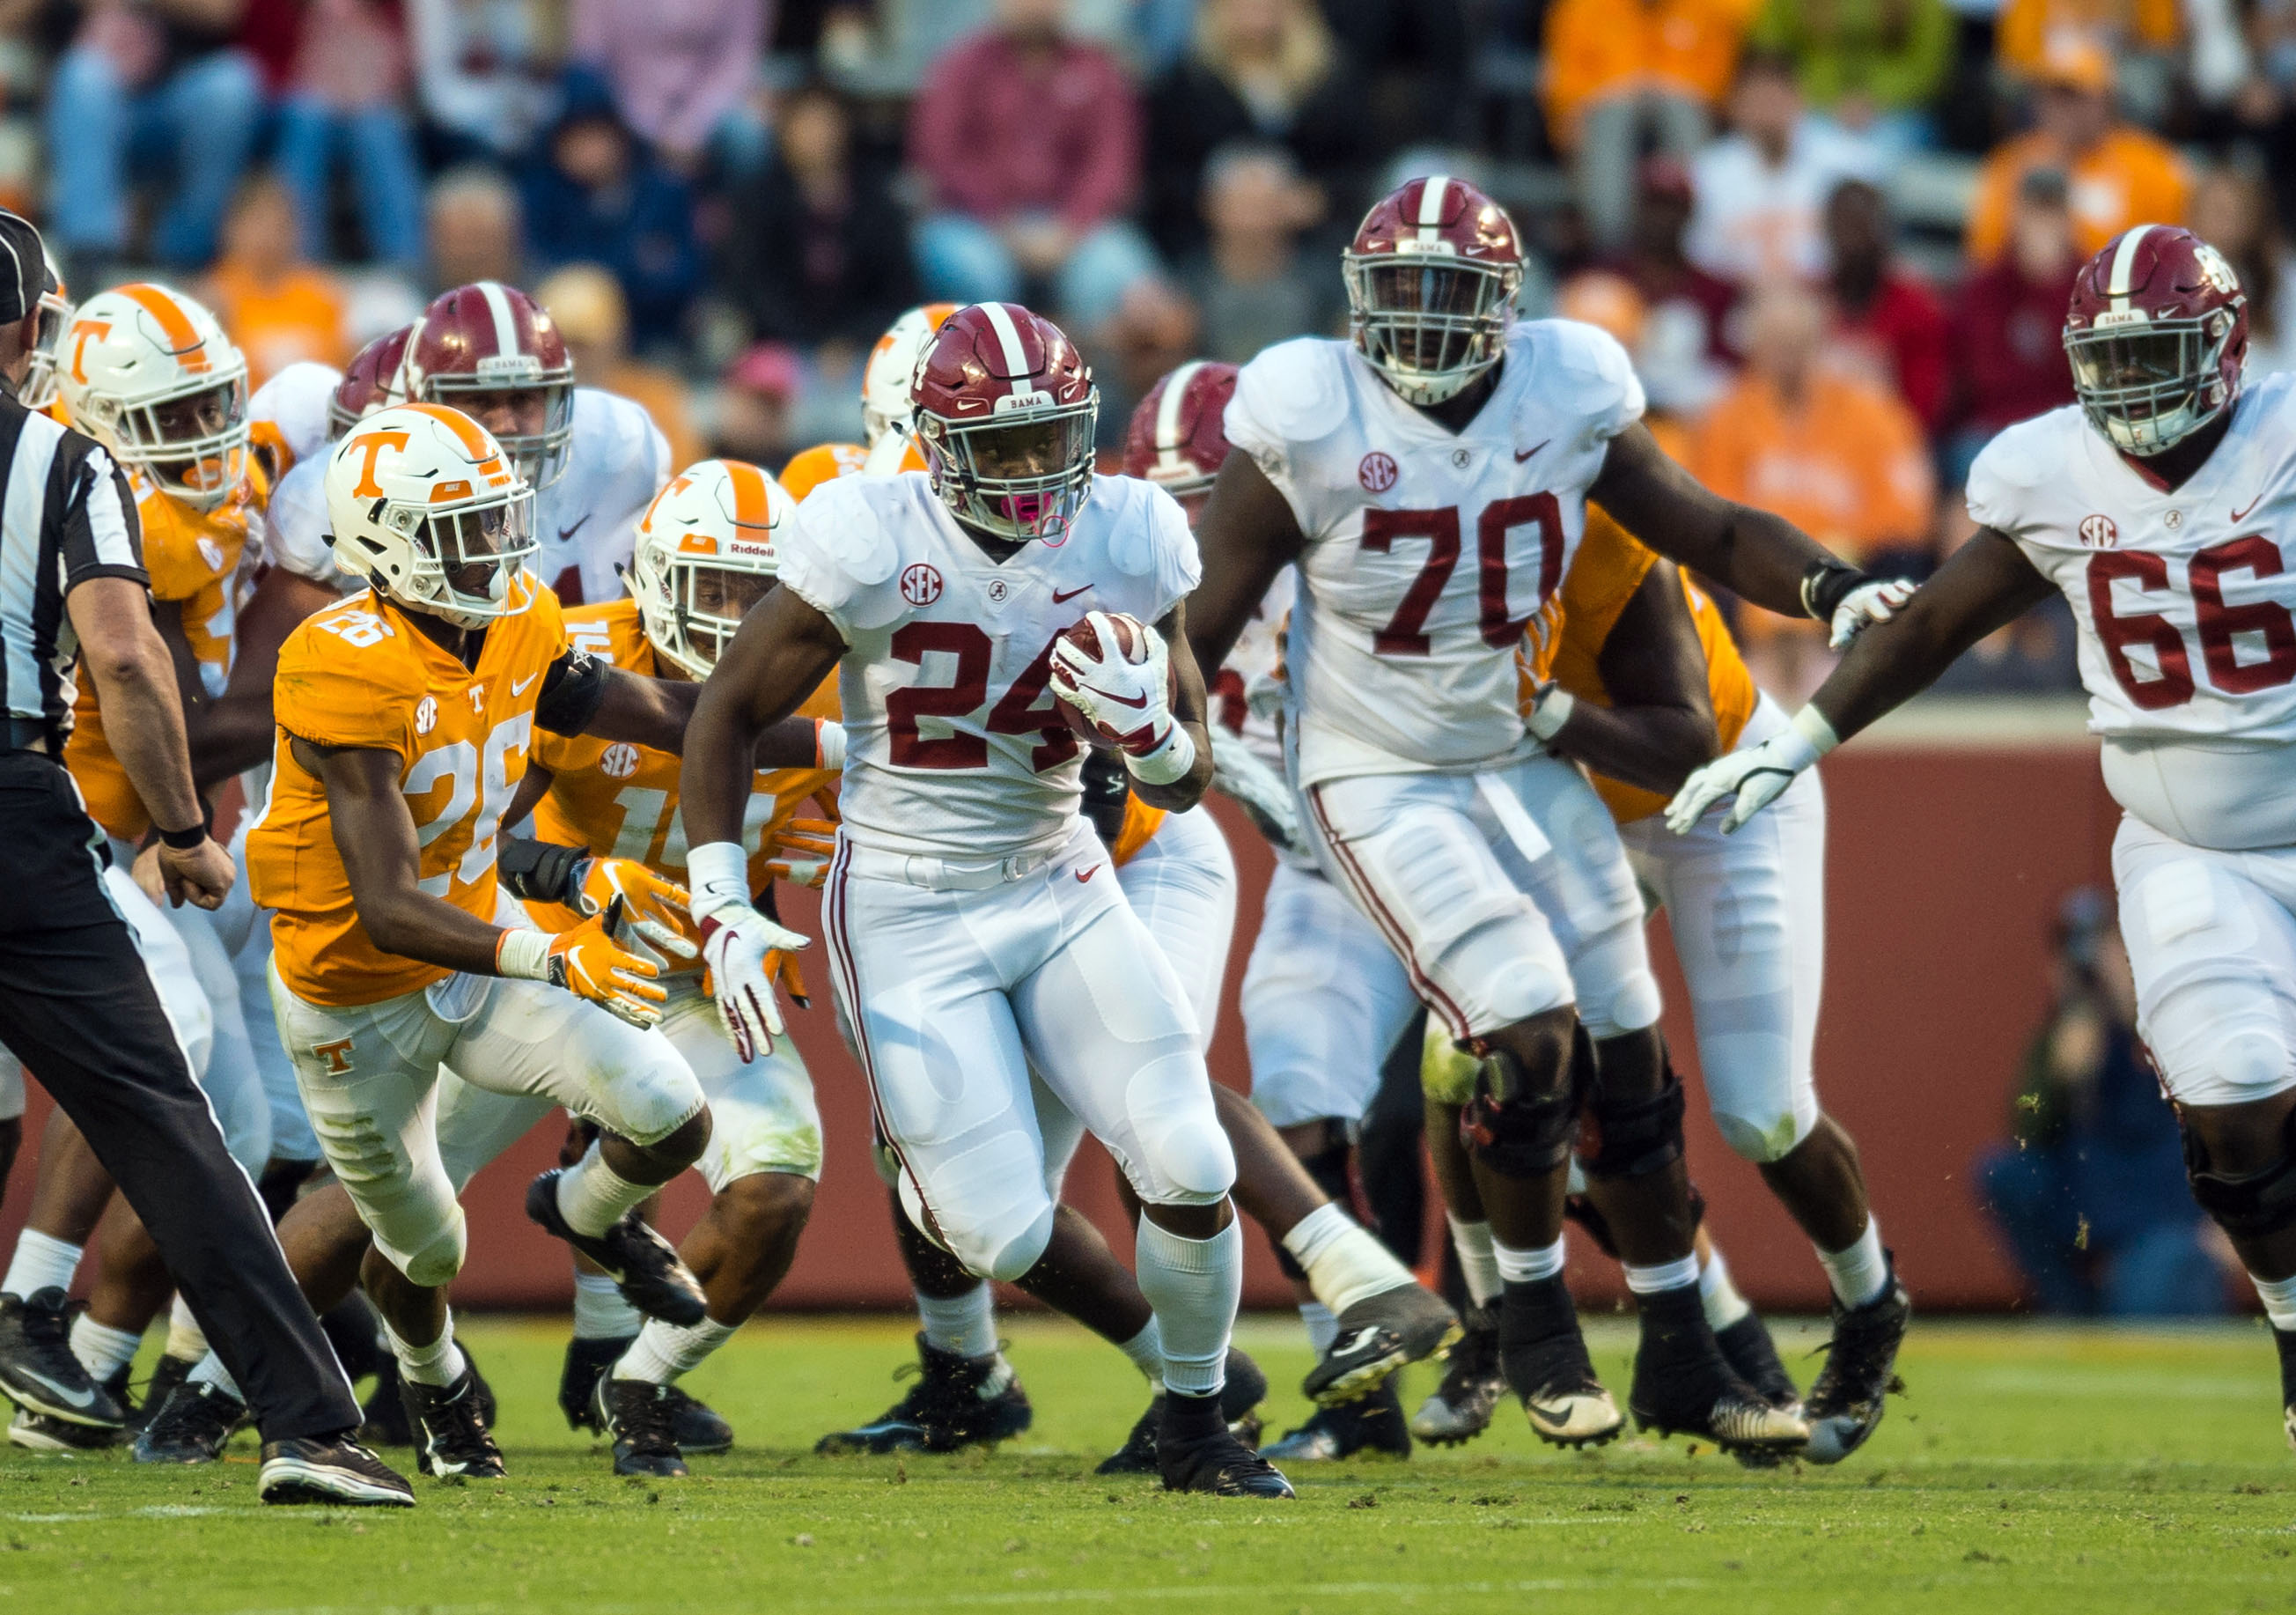 130-team S&P+ rankings: Bama's 1st, Clemson's 2nd, and it's chaos after that